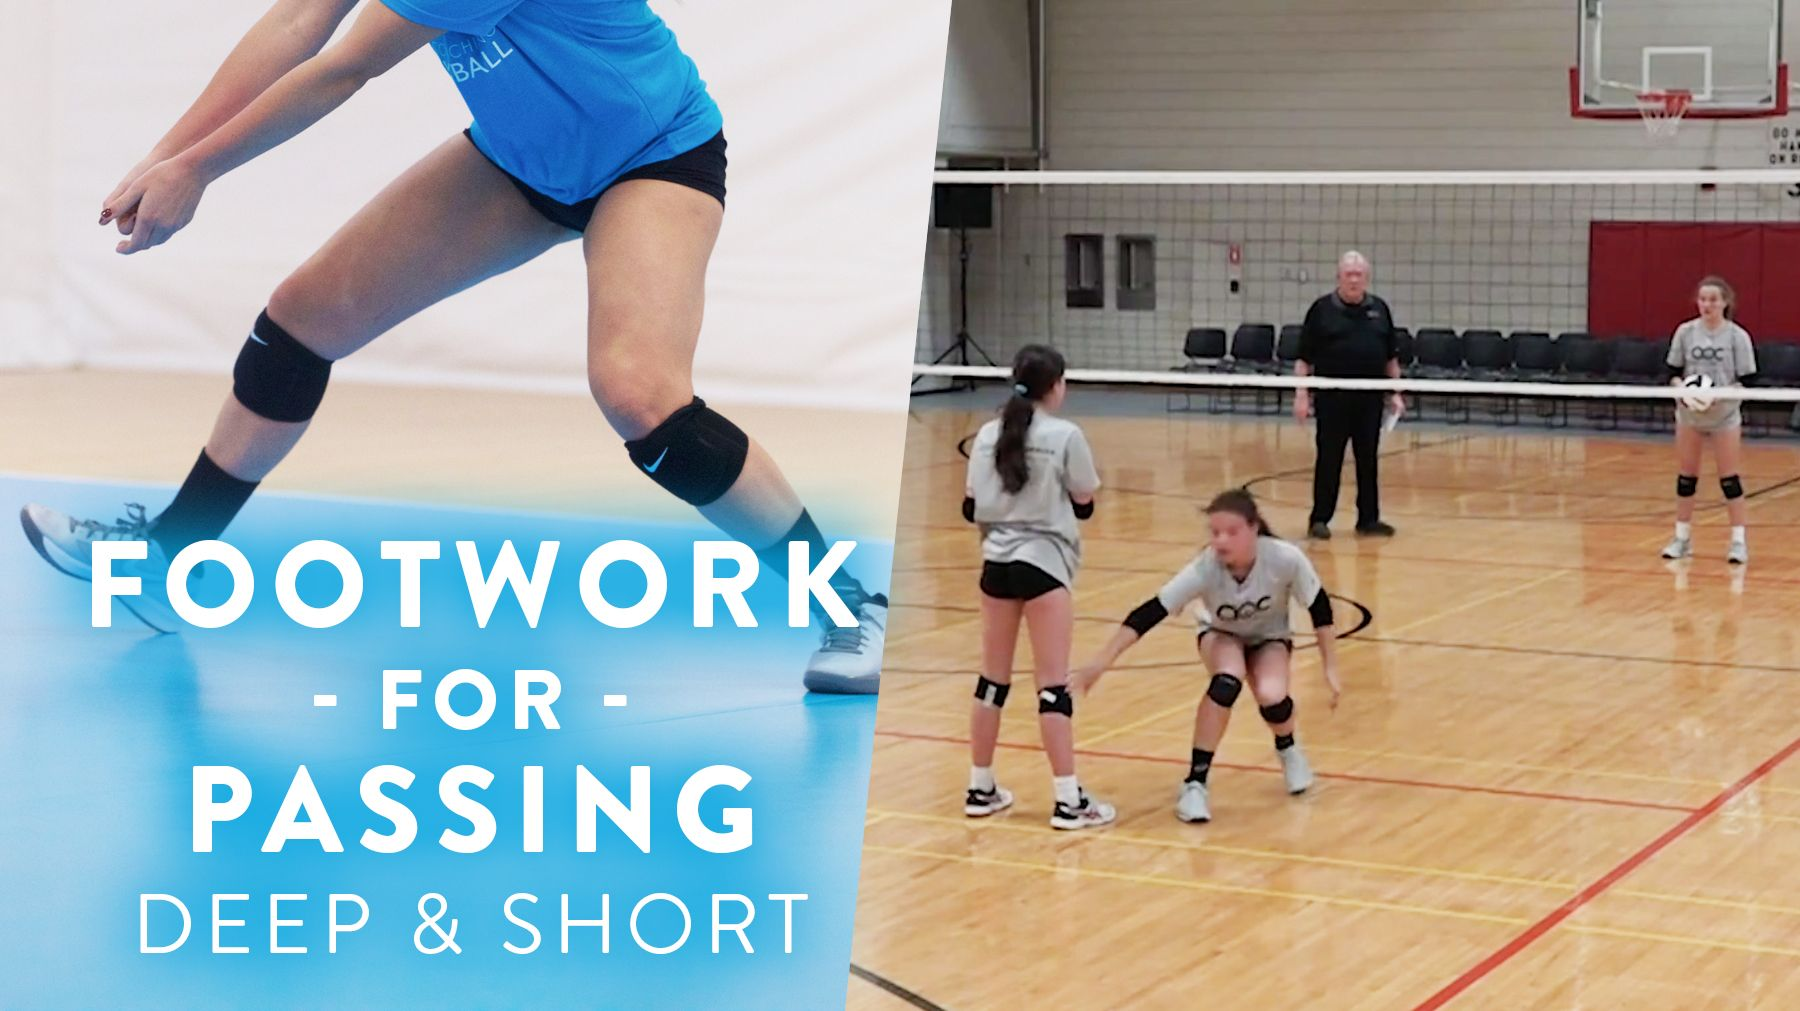 Footwork For Passing Deep And Short With Images Coaching Volleyball Volleyball Skills Basketball Workouts